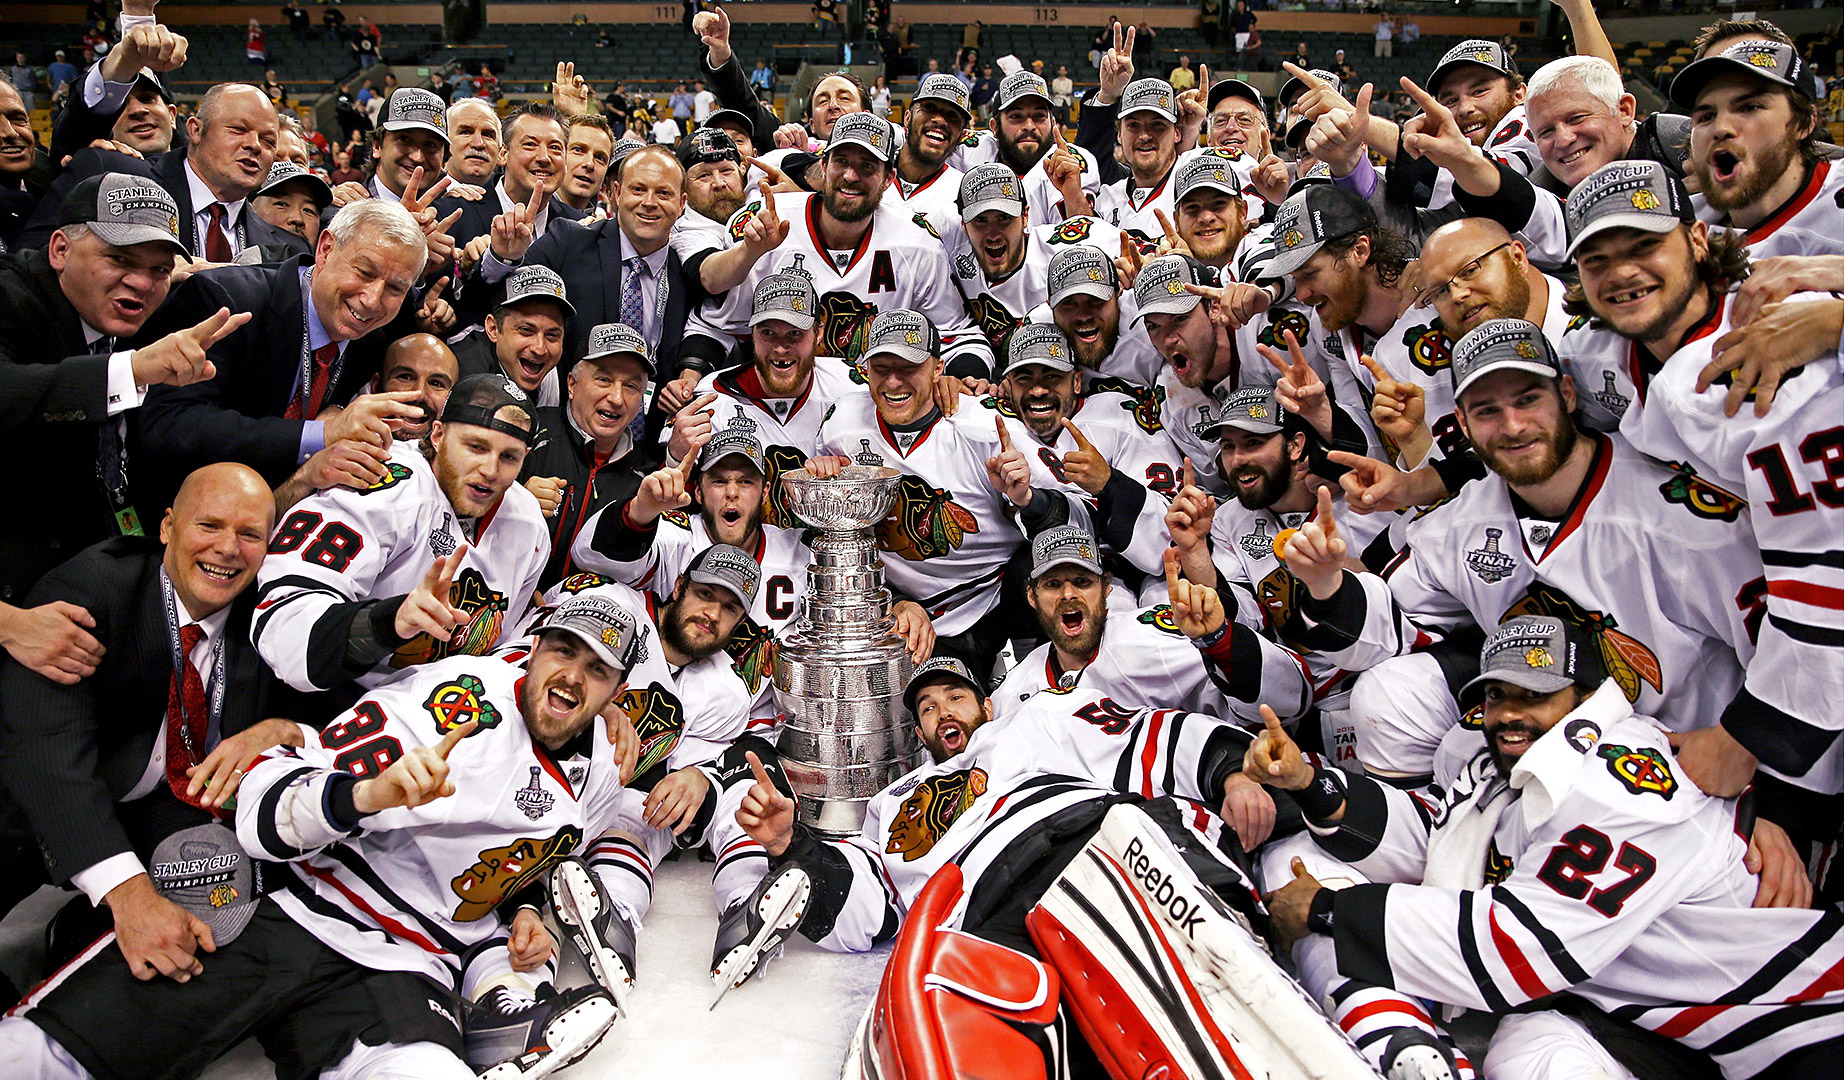 2013 Chicago Blackhawks